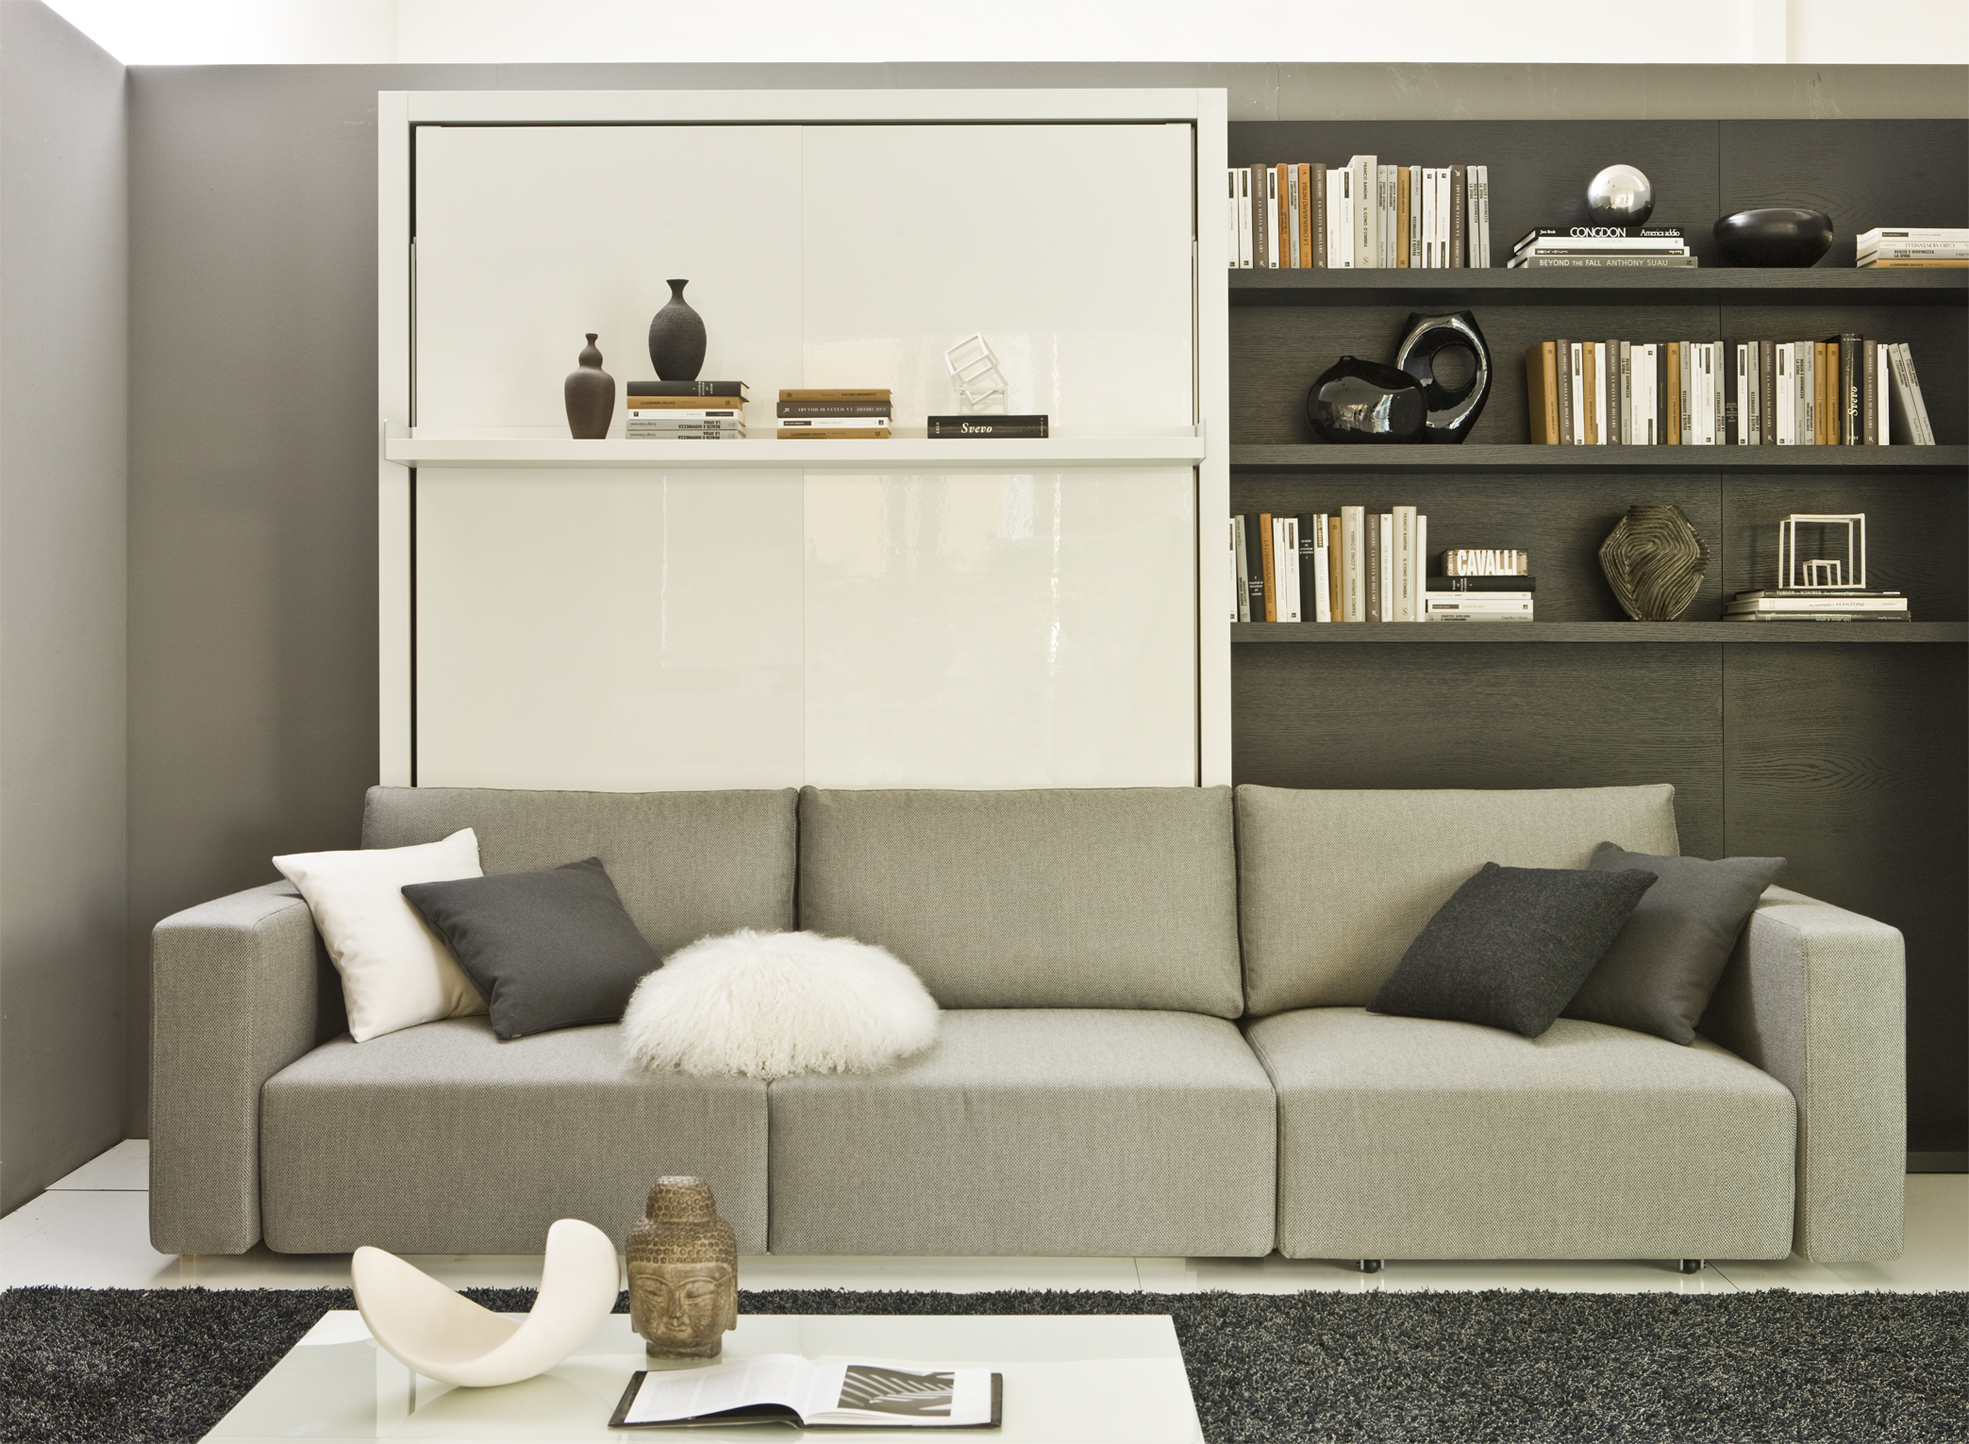 The Atoll swing sofa fold away wall bed unit many different